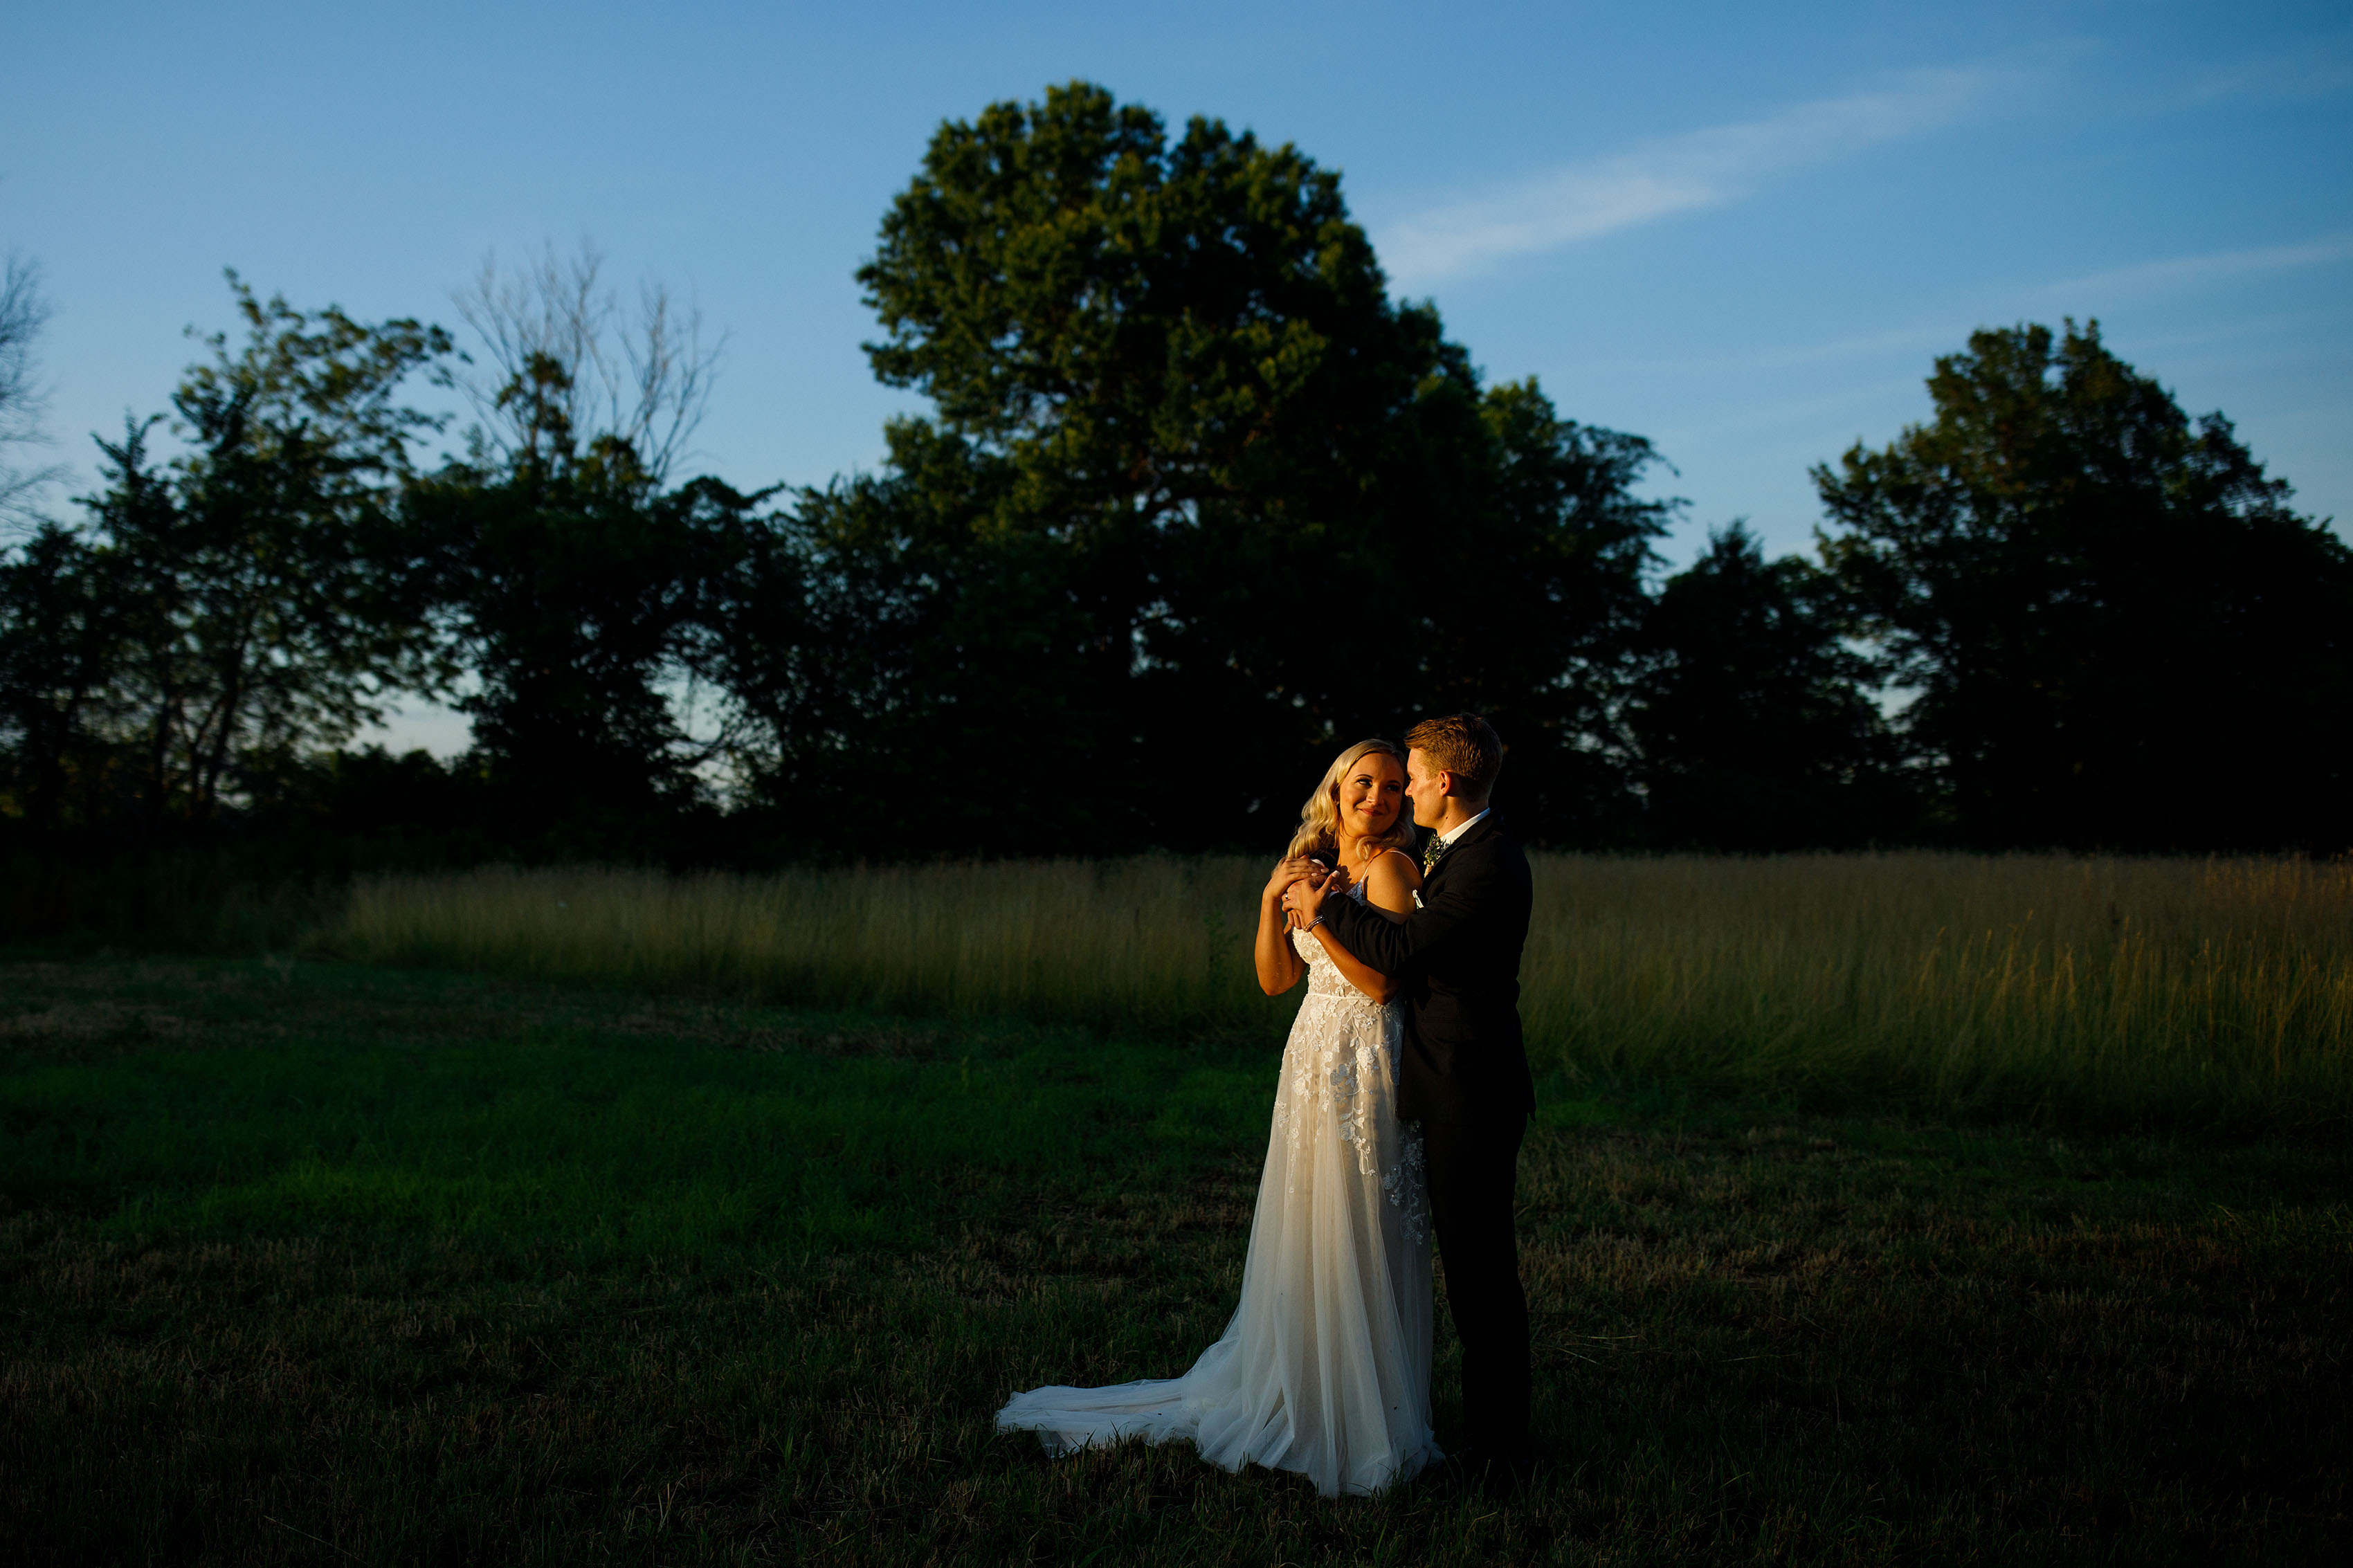 The newlyweds share a moment together during their summer Emerson Fields wedding in Excello, Missouri